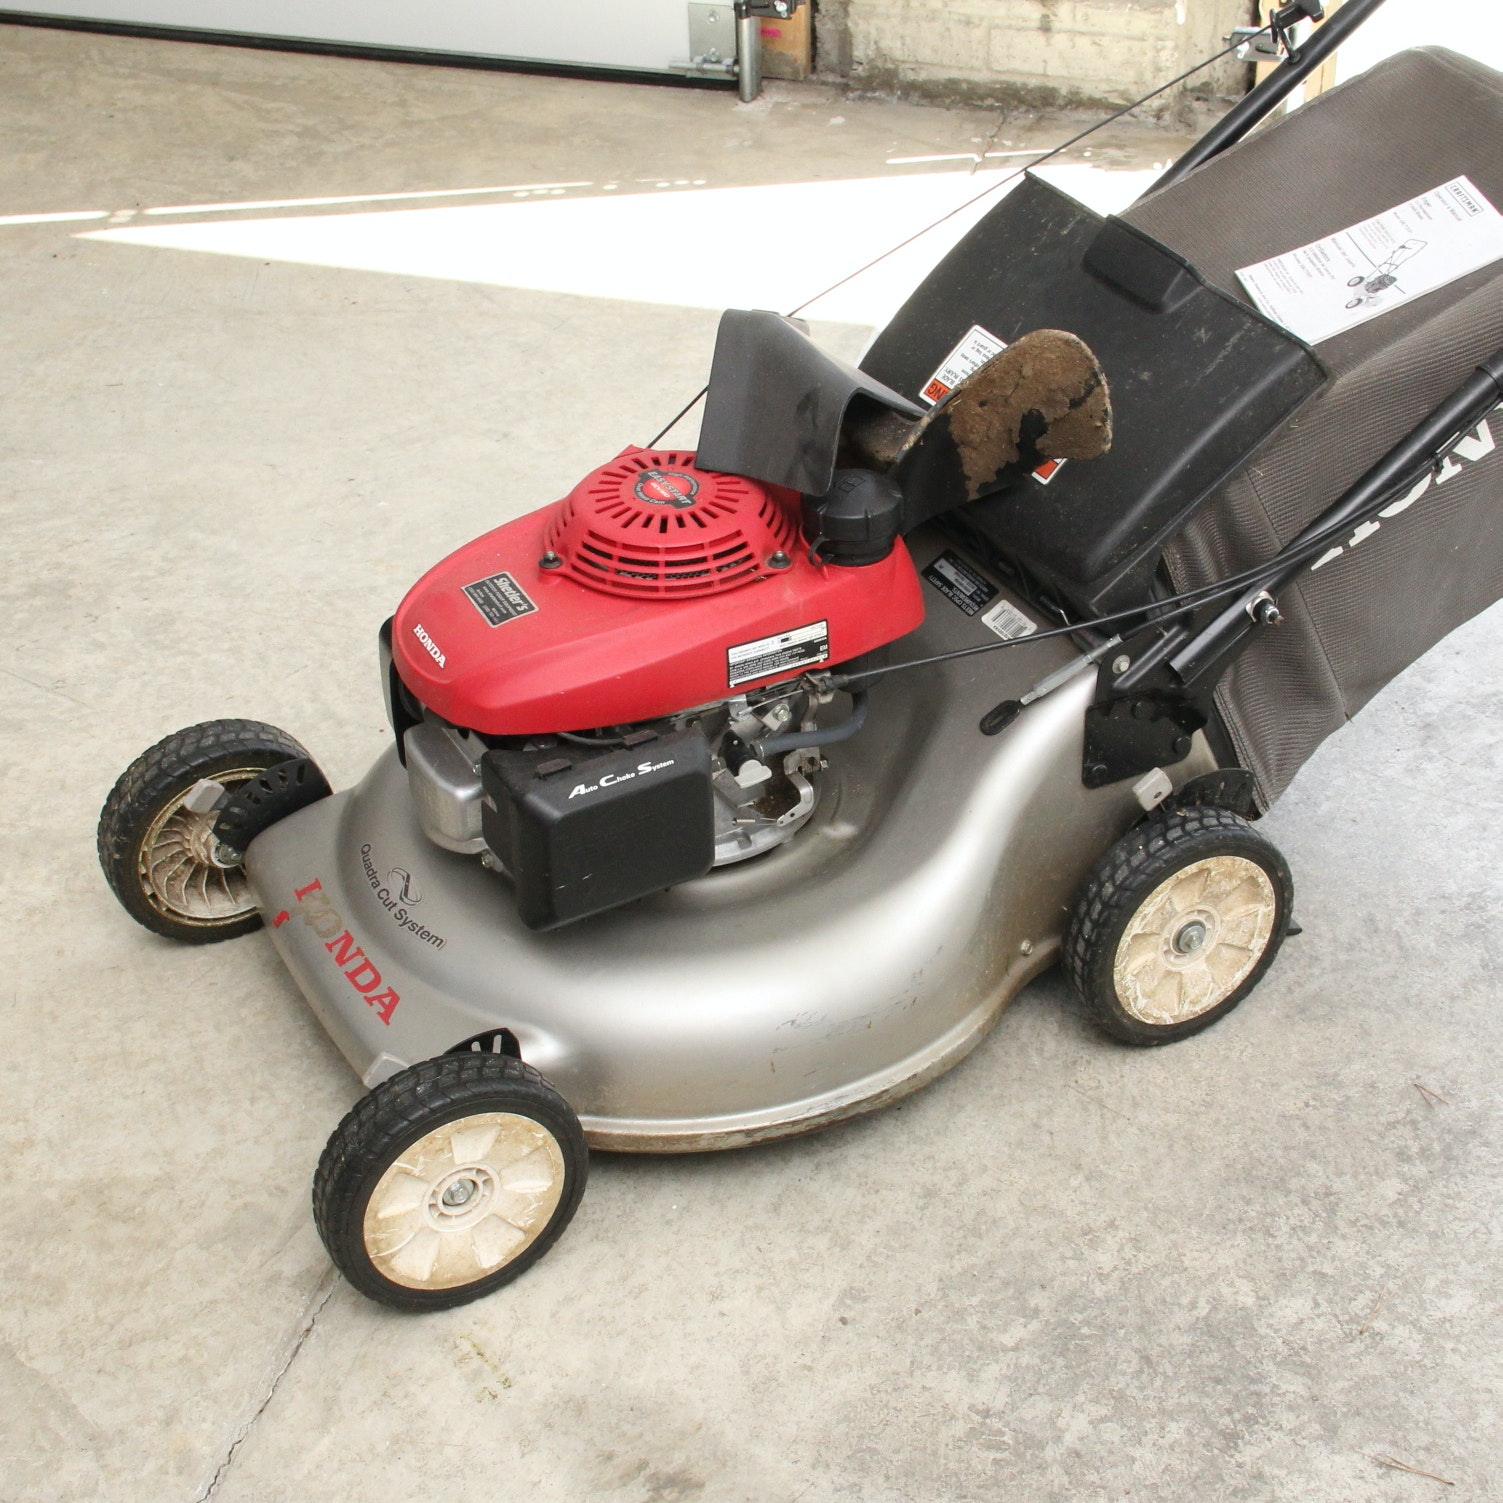 Honda Easy Start Gcv160 Self Propelled Lawn Mower Ebth